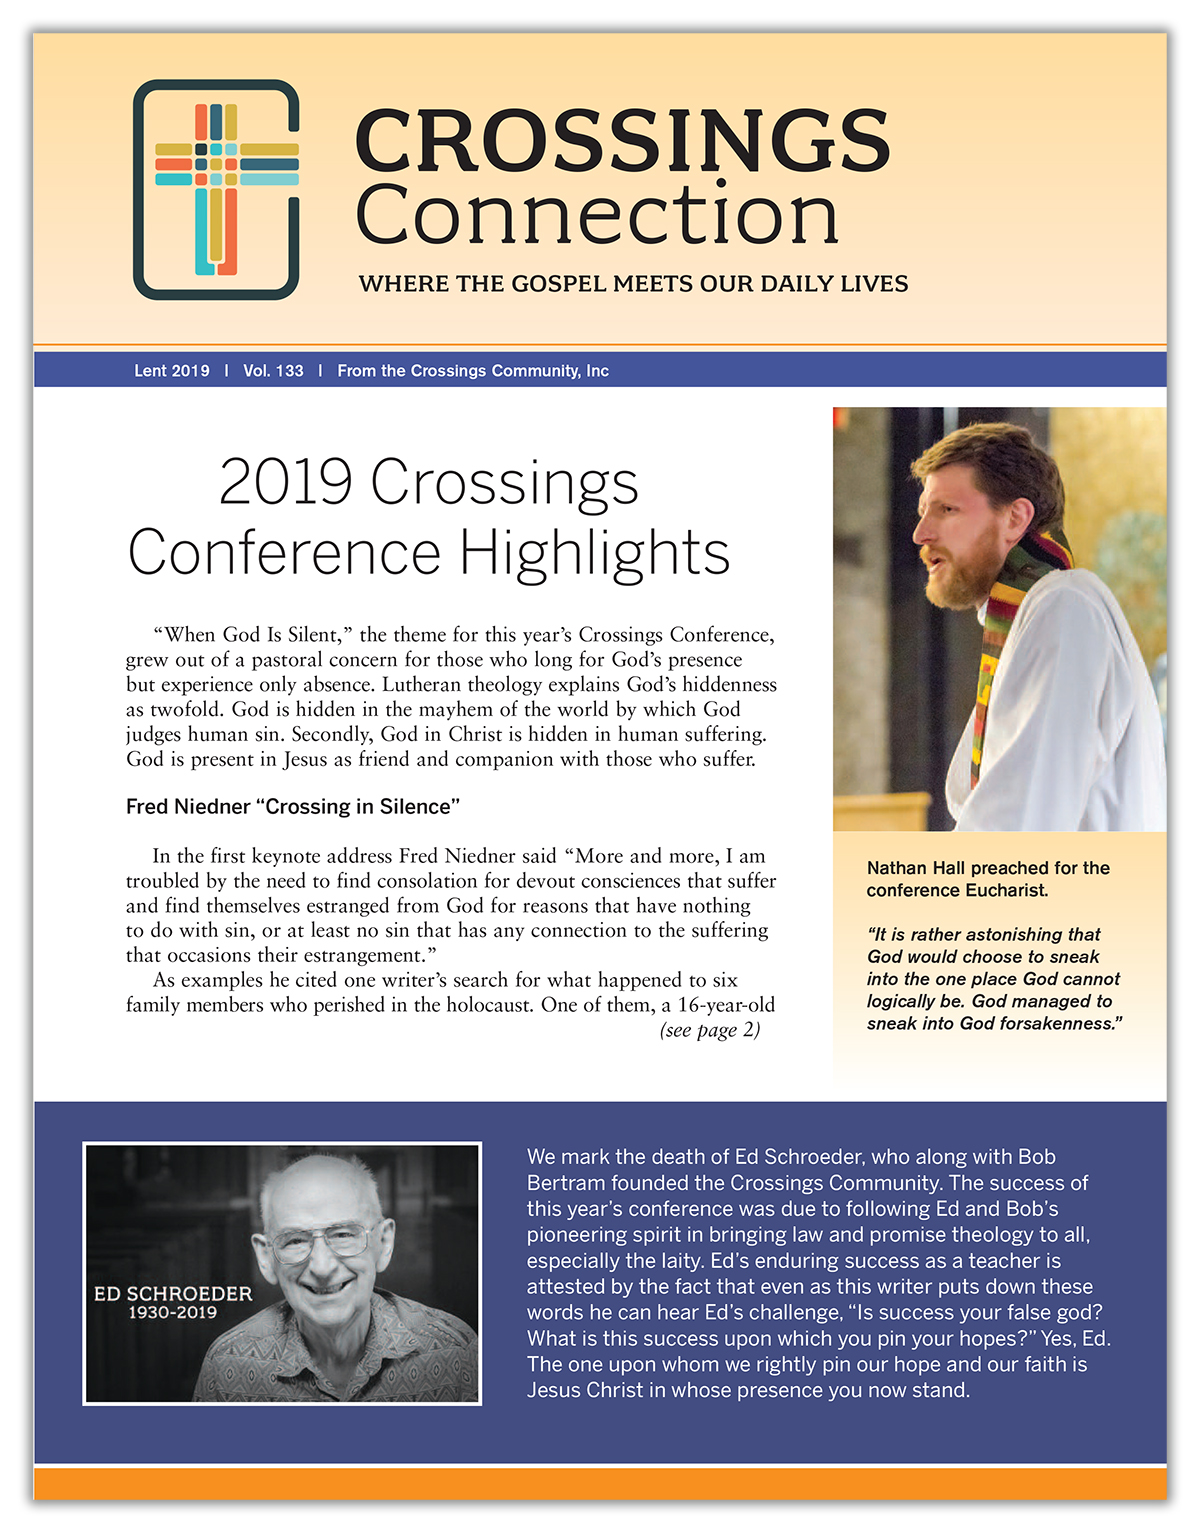 http://crossings.org/wp-content/uploads/2019/05/pentecost-2019-NL.pdf